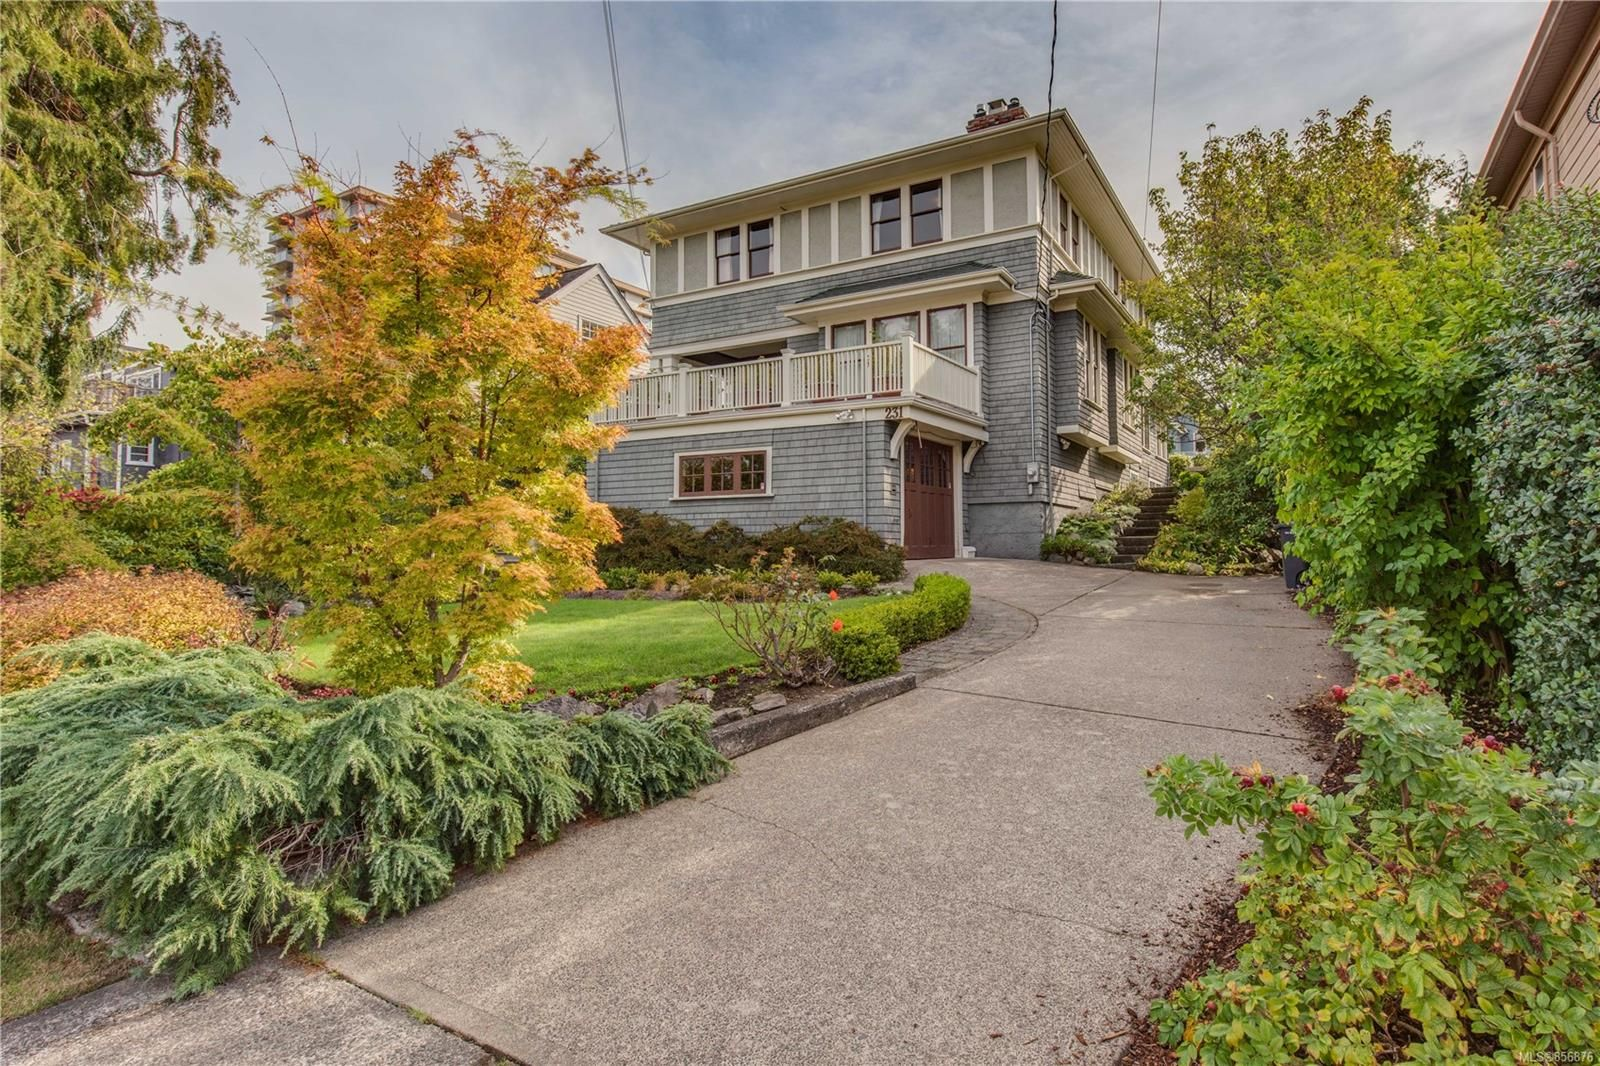 Main Photo: 231 St. Andrews St in : Vi James Bay House for sale (Victoria)  : MLS®# 856876